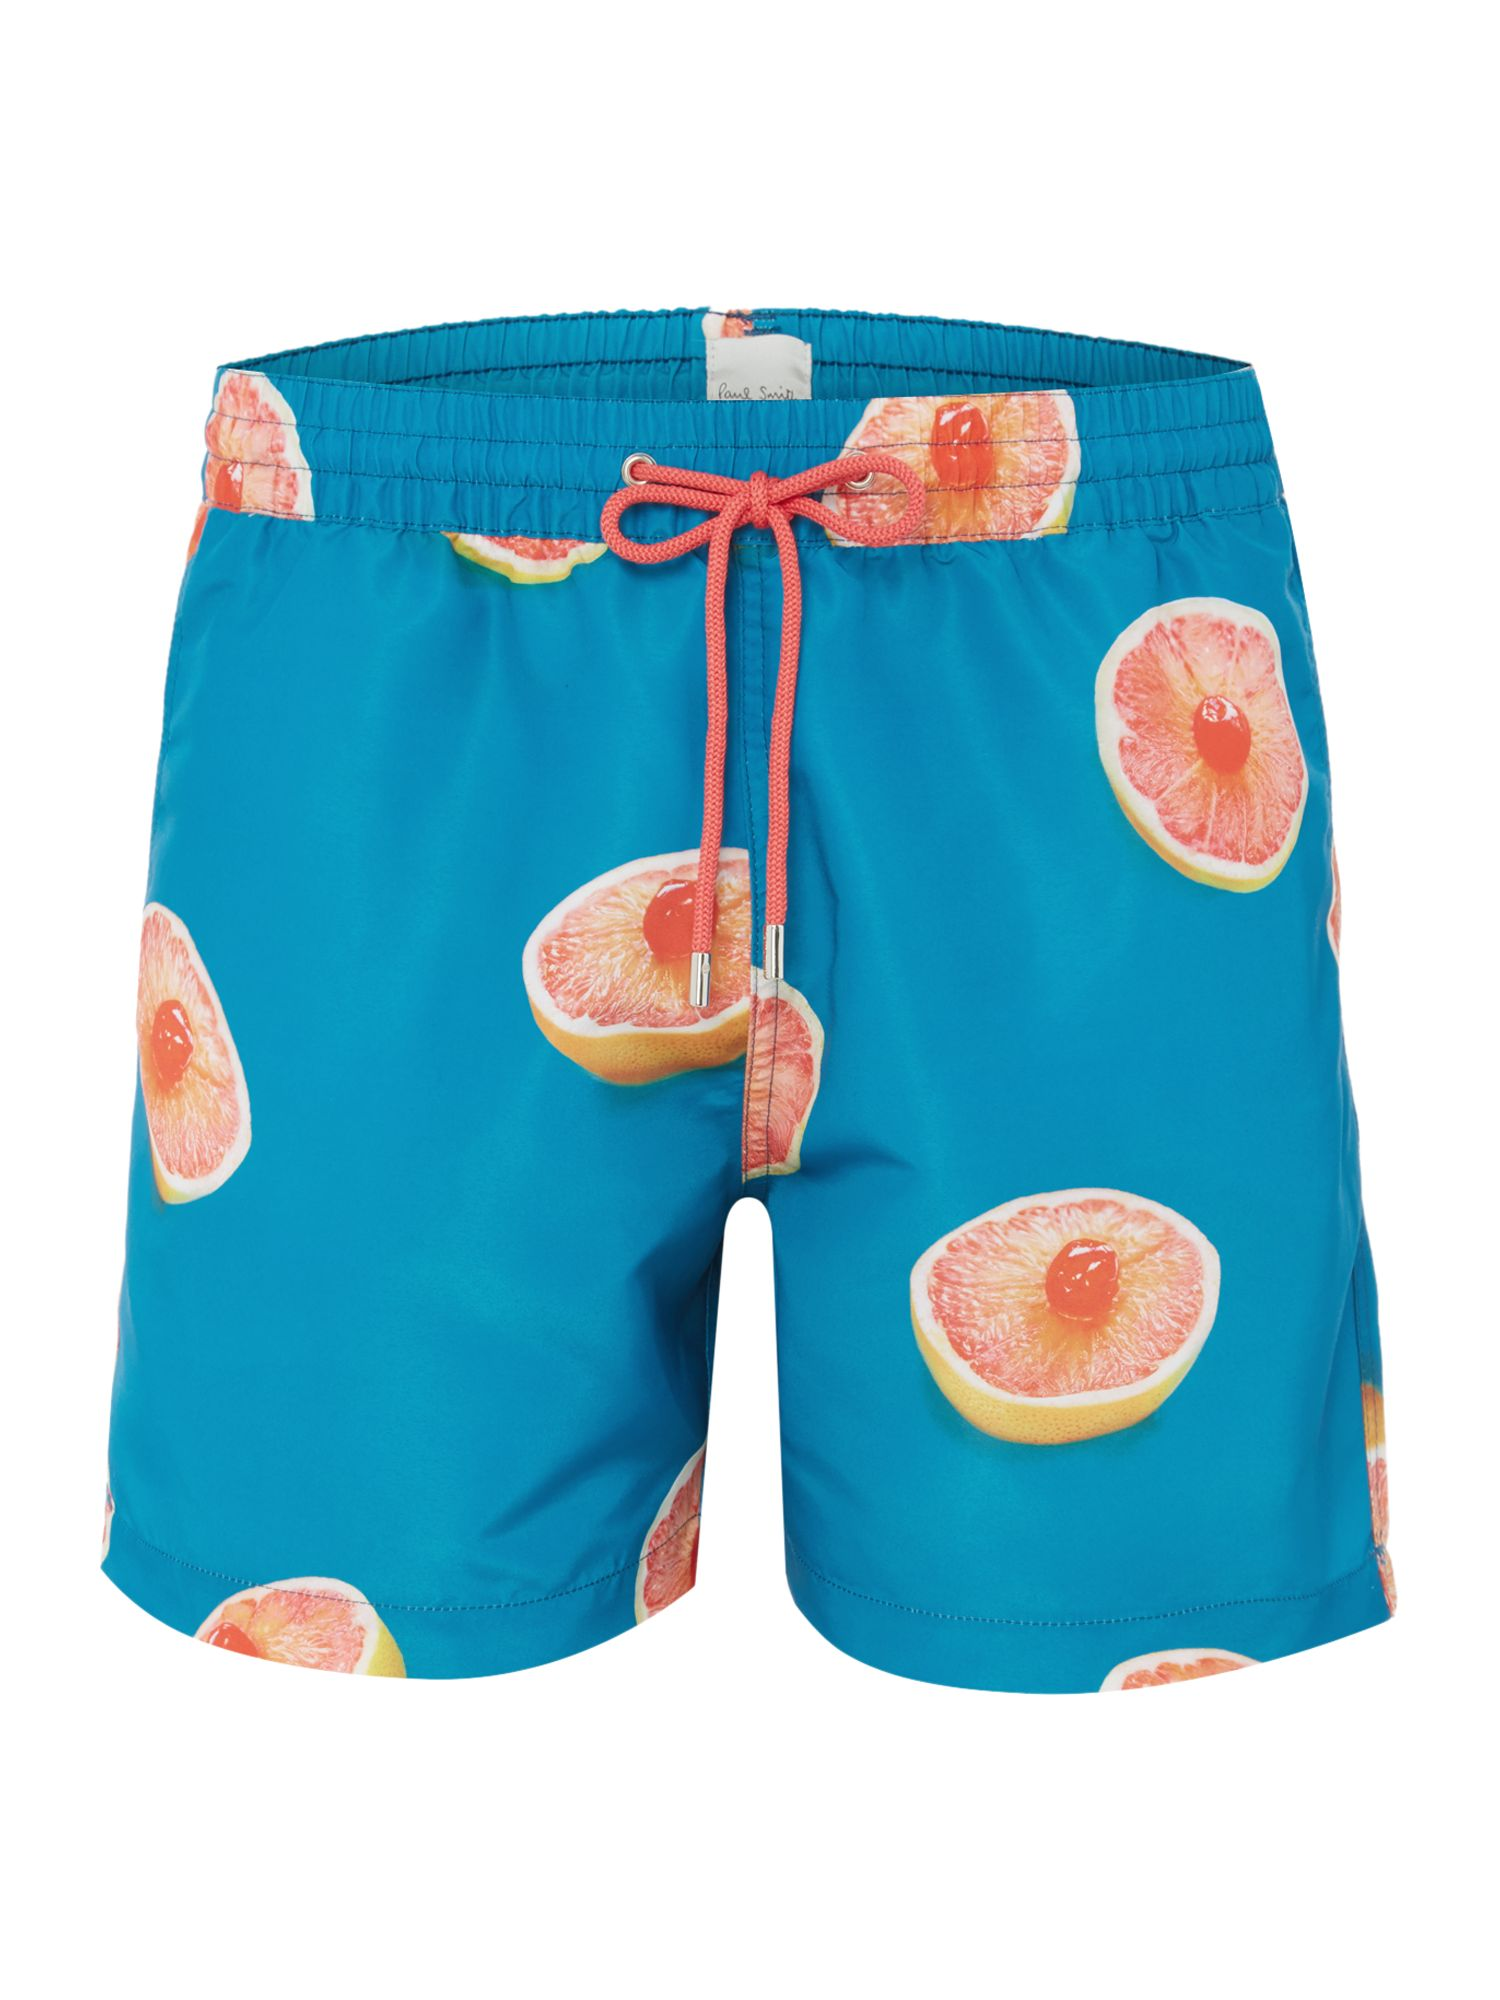 Men's Paul Smith Grapefruit Print Swim Short, Blue